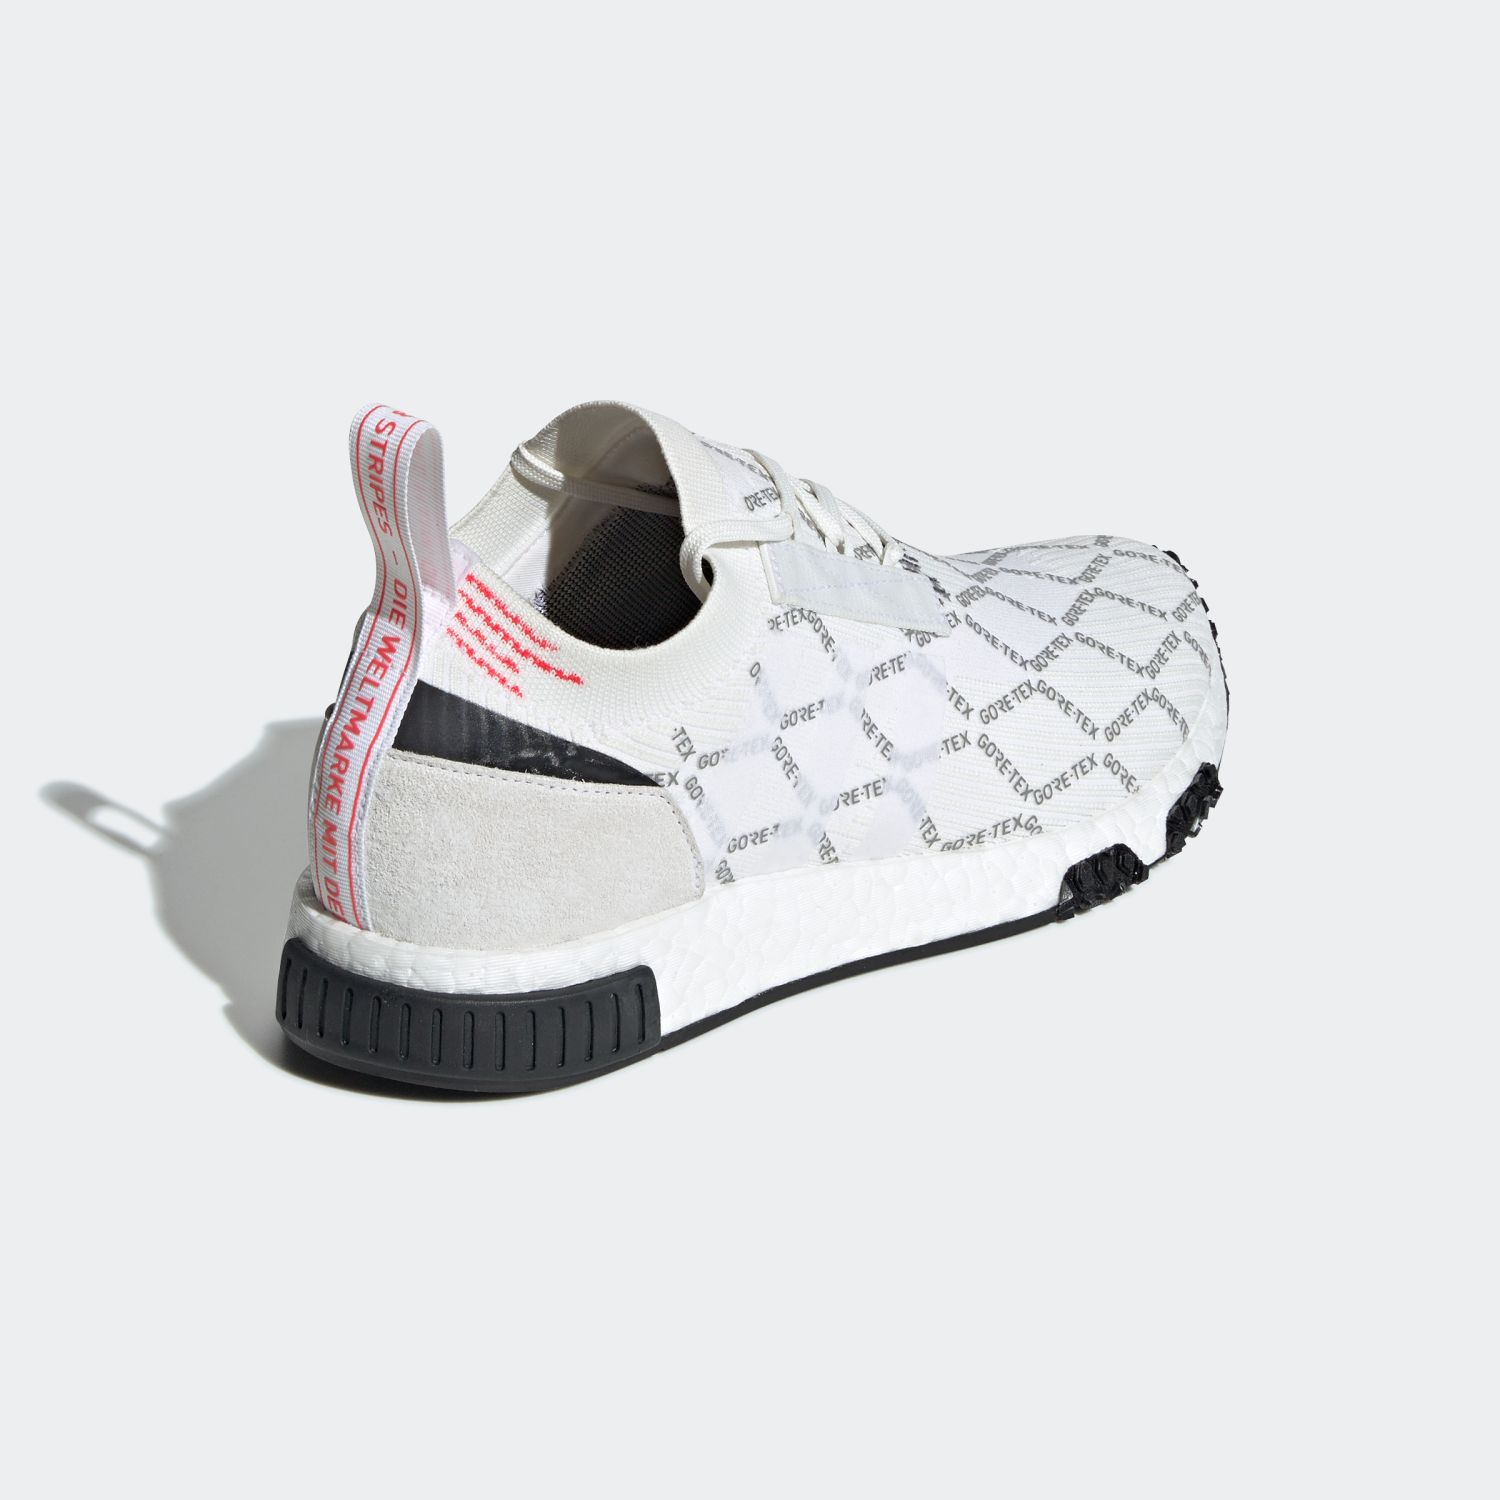 NMD Racer GORE-TEX White [5]